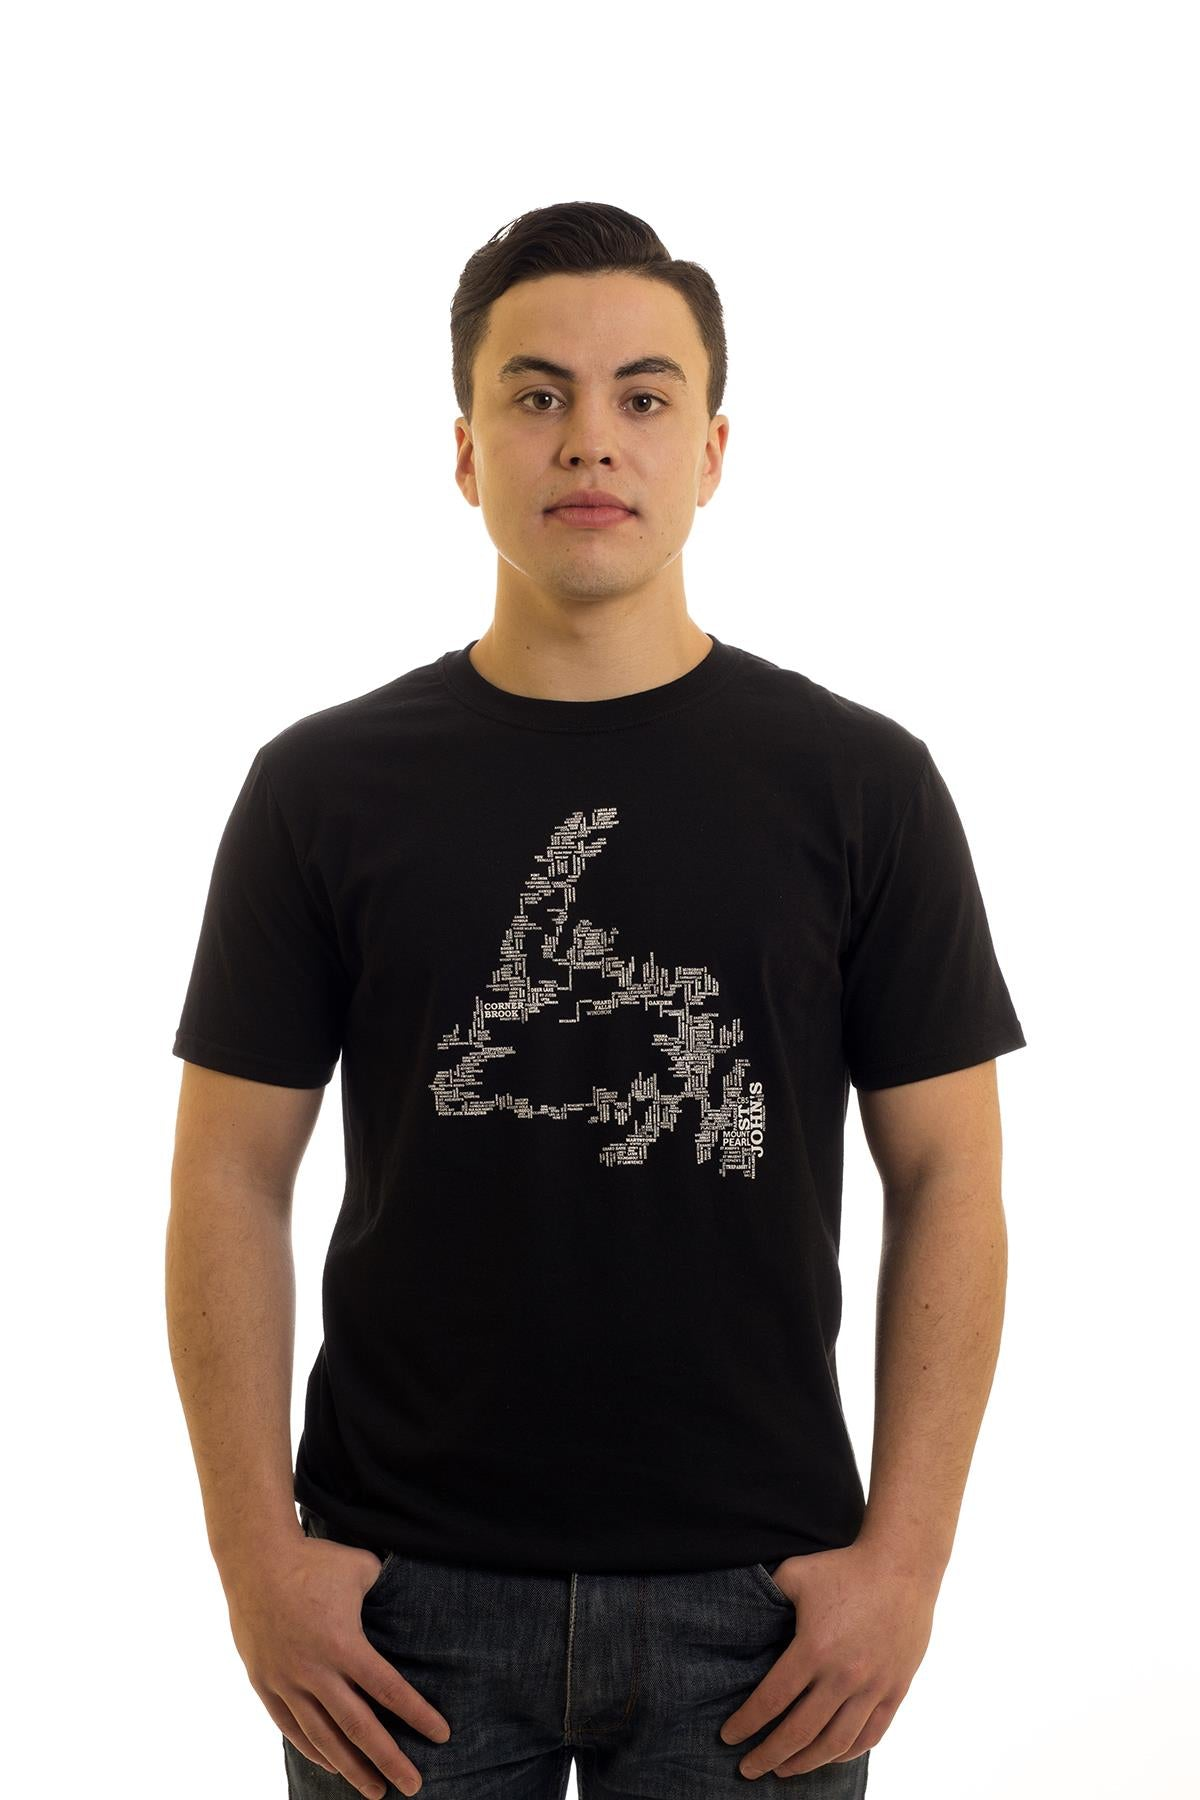 NFLD Place Names Map T-Shirt